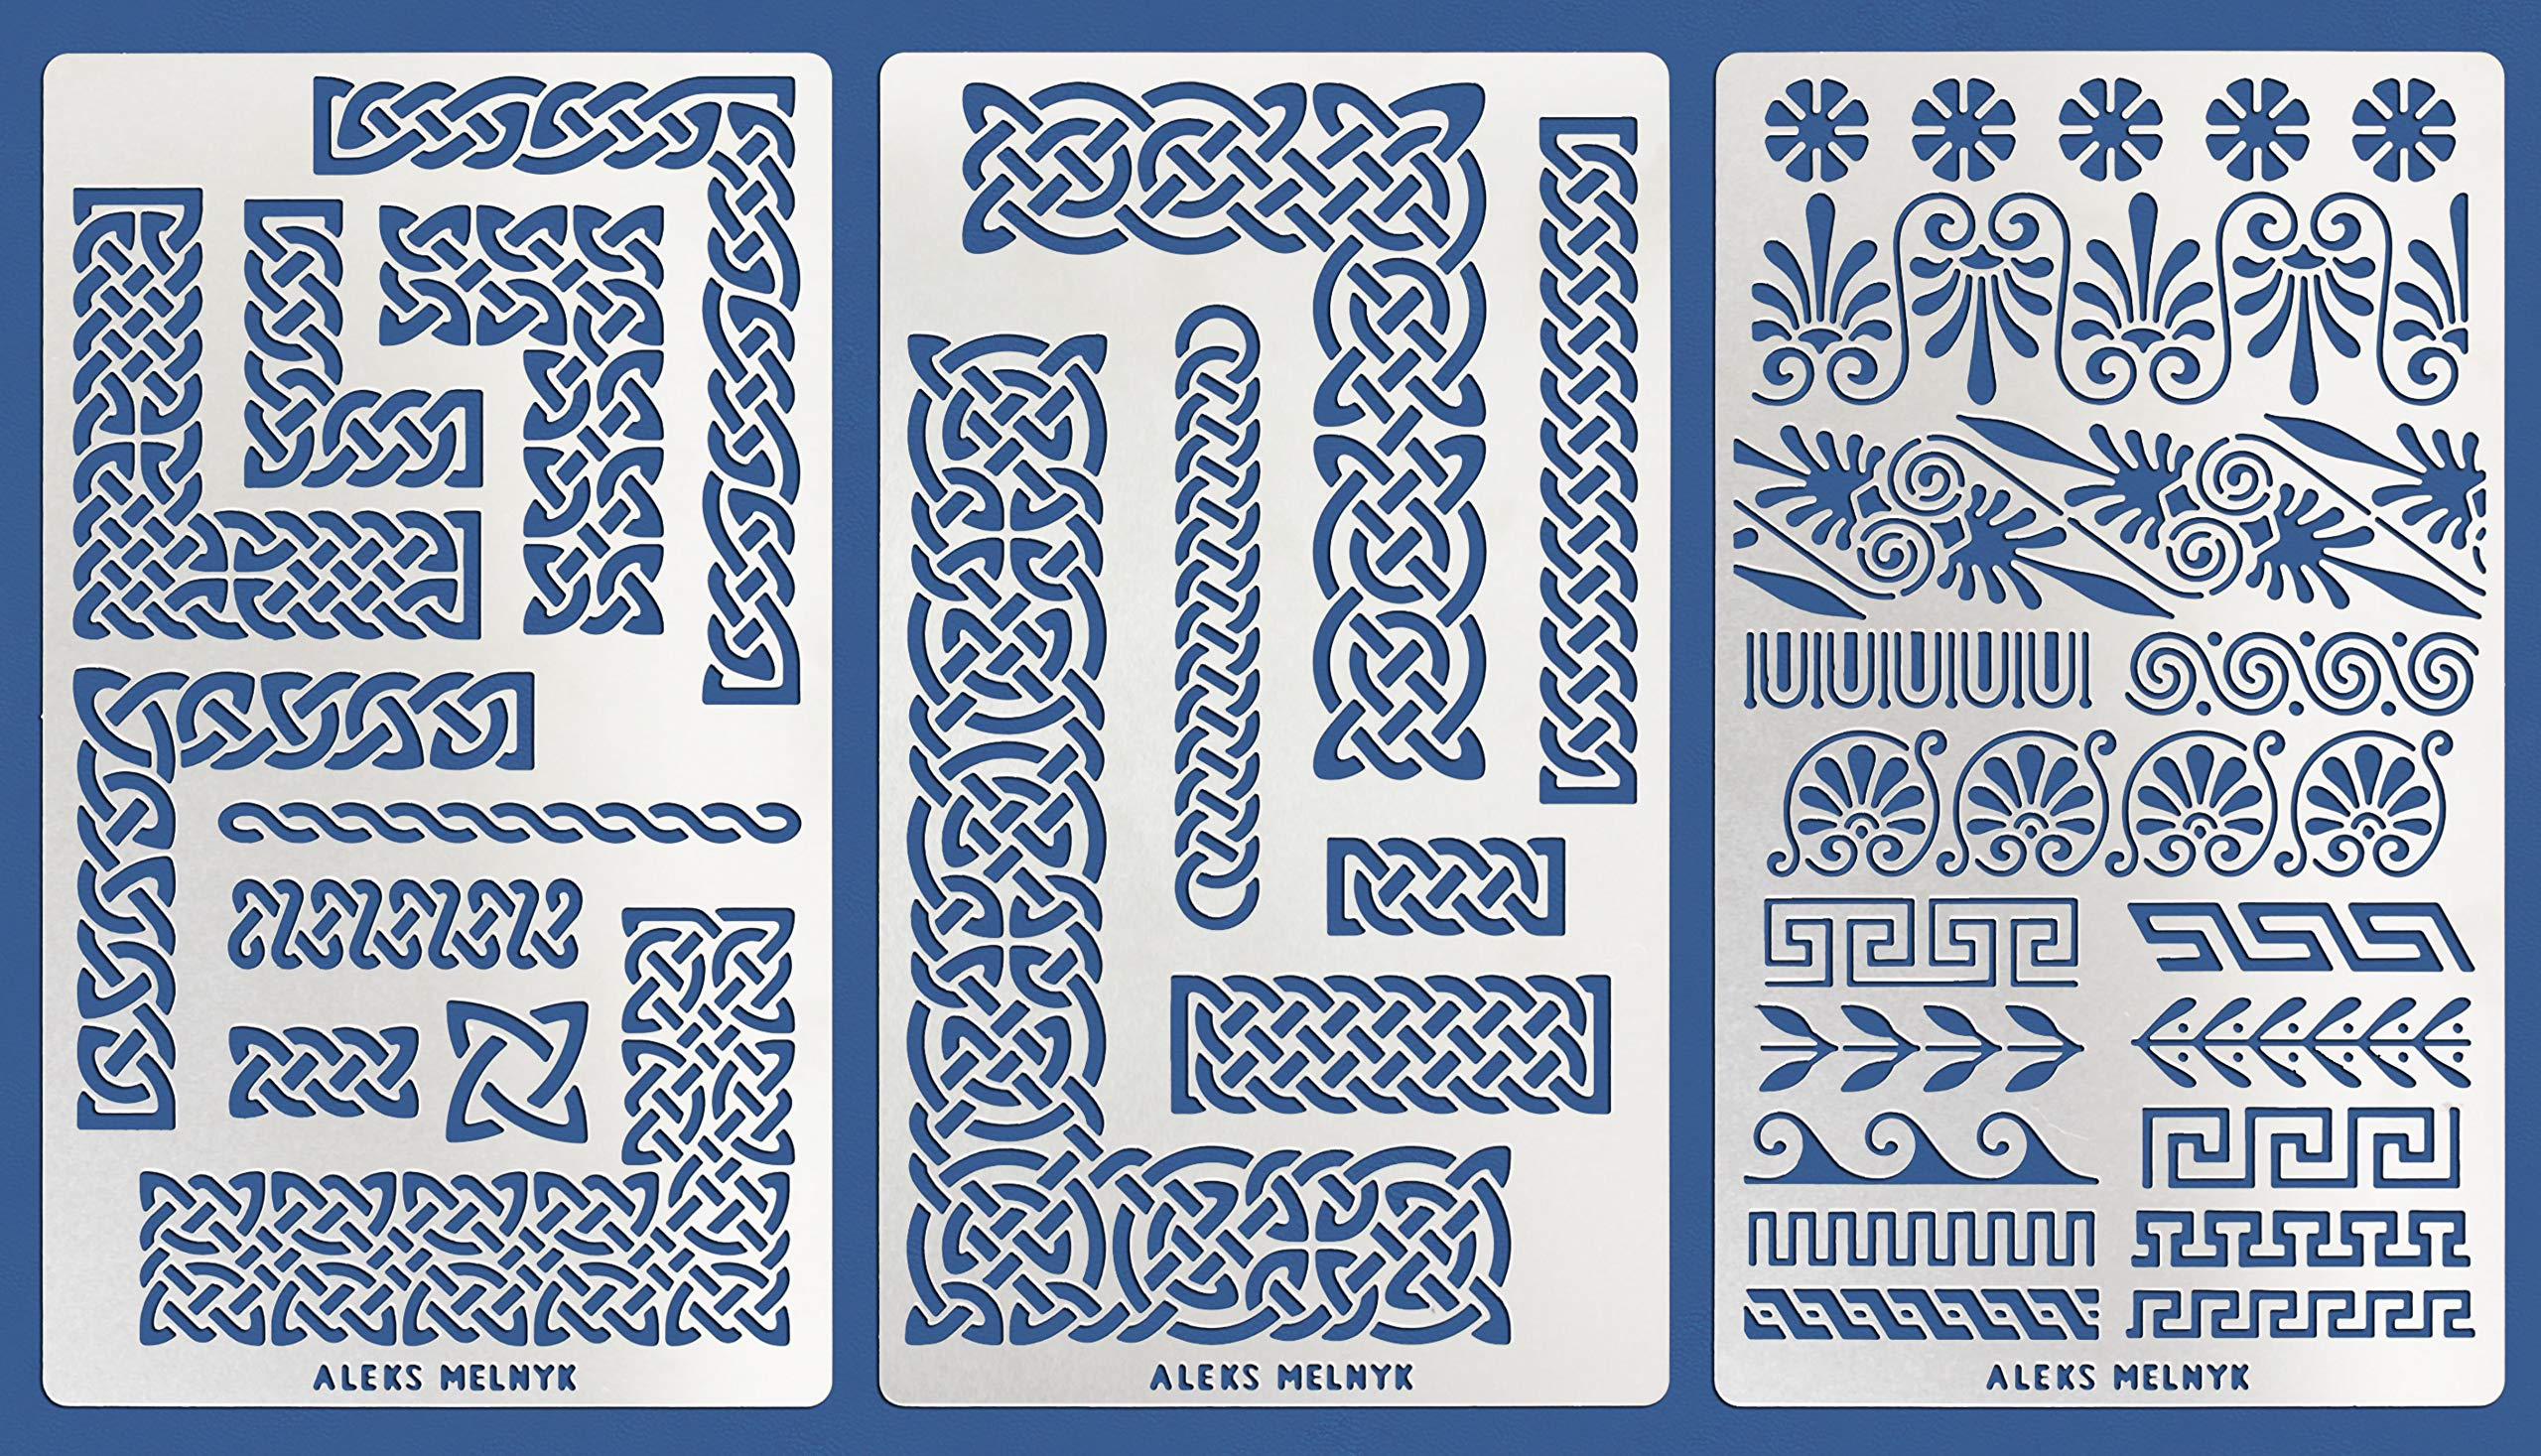 Aleks Melnyk #36 Metal Journal Stencils/Celtic Knot and Greek Ornaments/Stainless Steel Stencils Kit 3 PCS/Templates Tool for Wood Burning, Pyrography and Engraving/Scrapbooking/Crafting/DIY